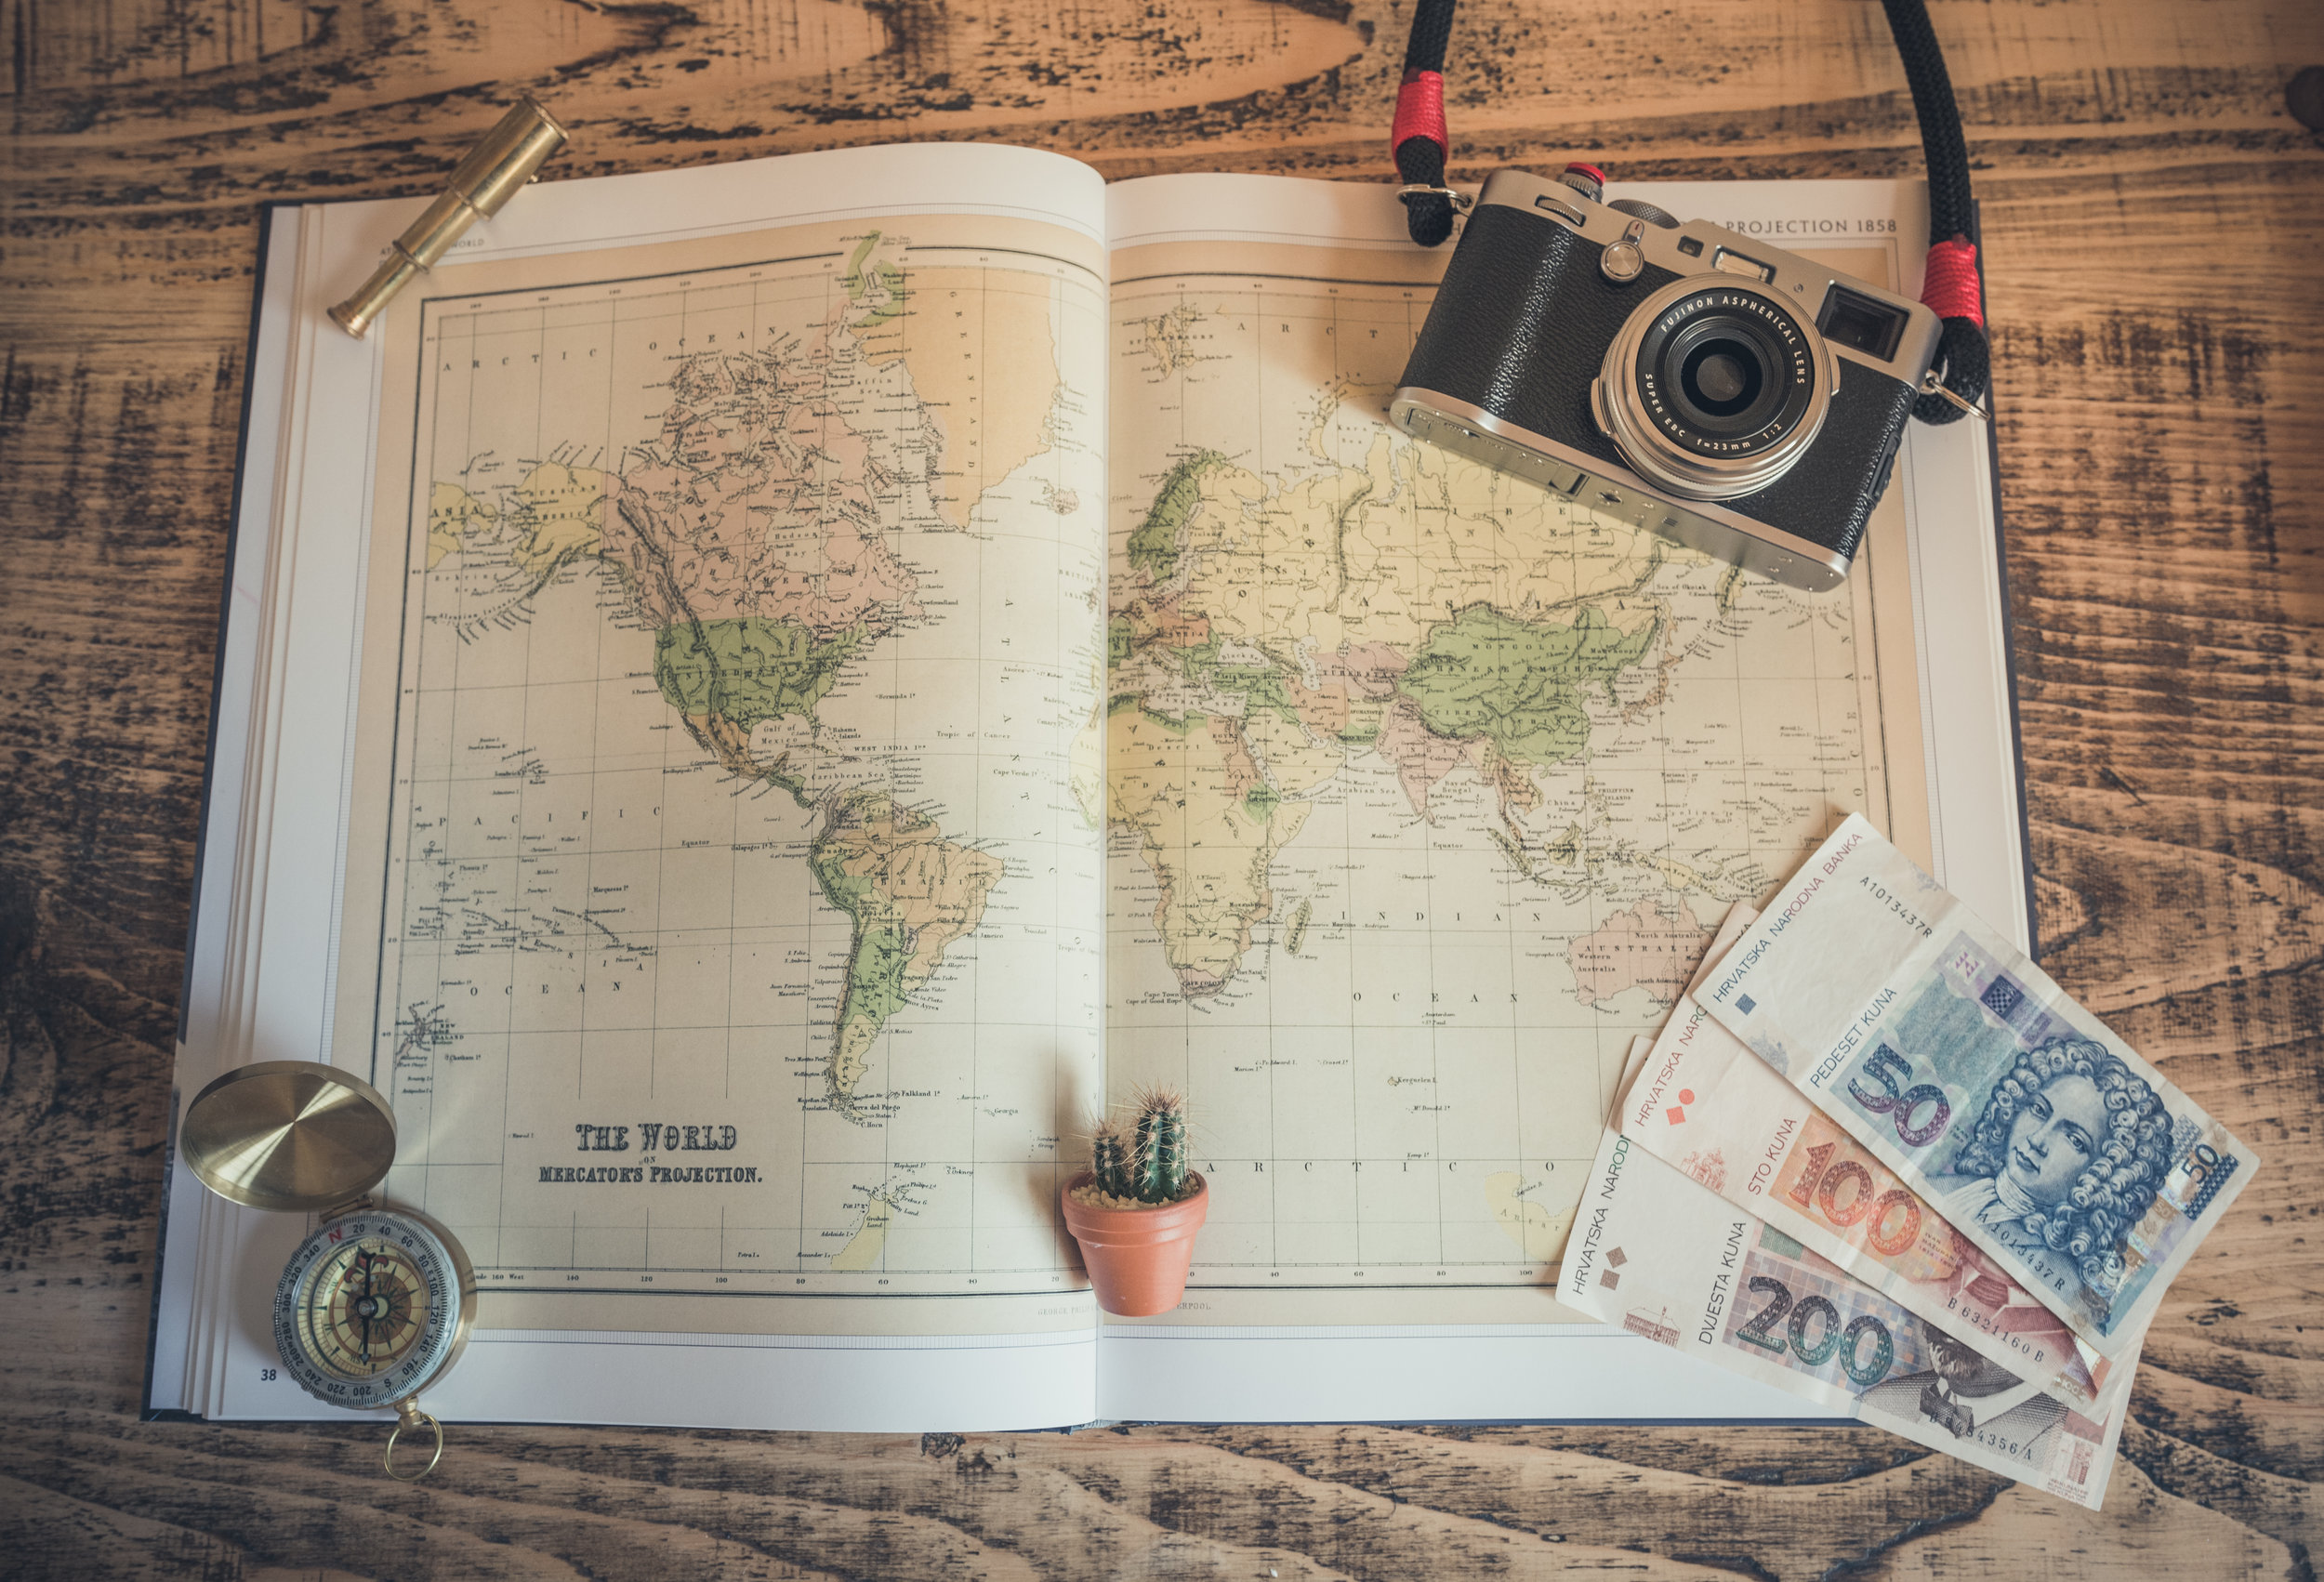 - BRAINSTORMINGNeed some tips on the best time to book your travel + accommodation? Want some suggestions for activities, dining, and lodging? Need to brainstorm ideas and come up with a plan for planning your trip?